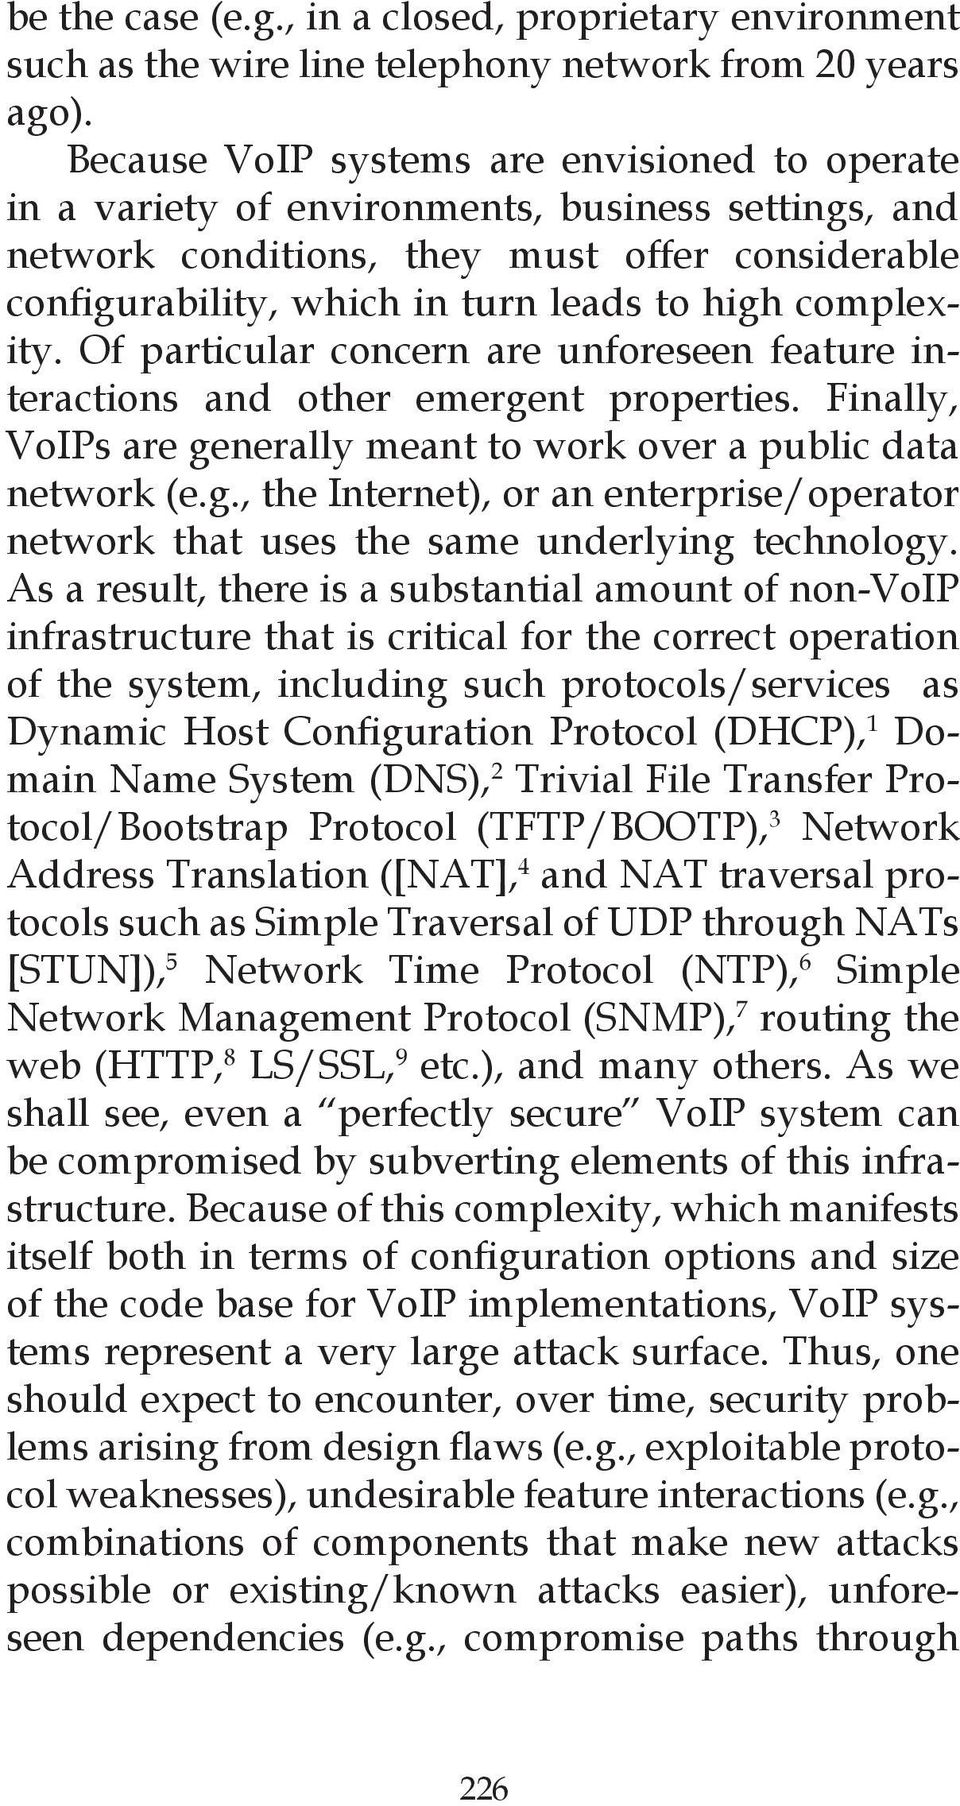 Of particular concern are unforeseen feature interactions and other emergent properties. Finally, VoIPs are generally meant to work over a public data network (e.g., the Internet), or an enterprise/operator network that uses the same underlying technology.